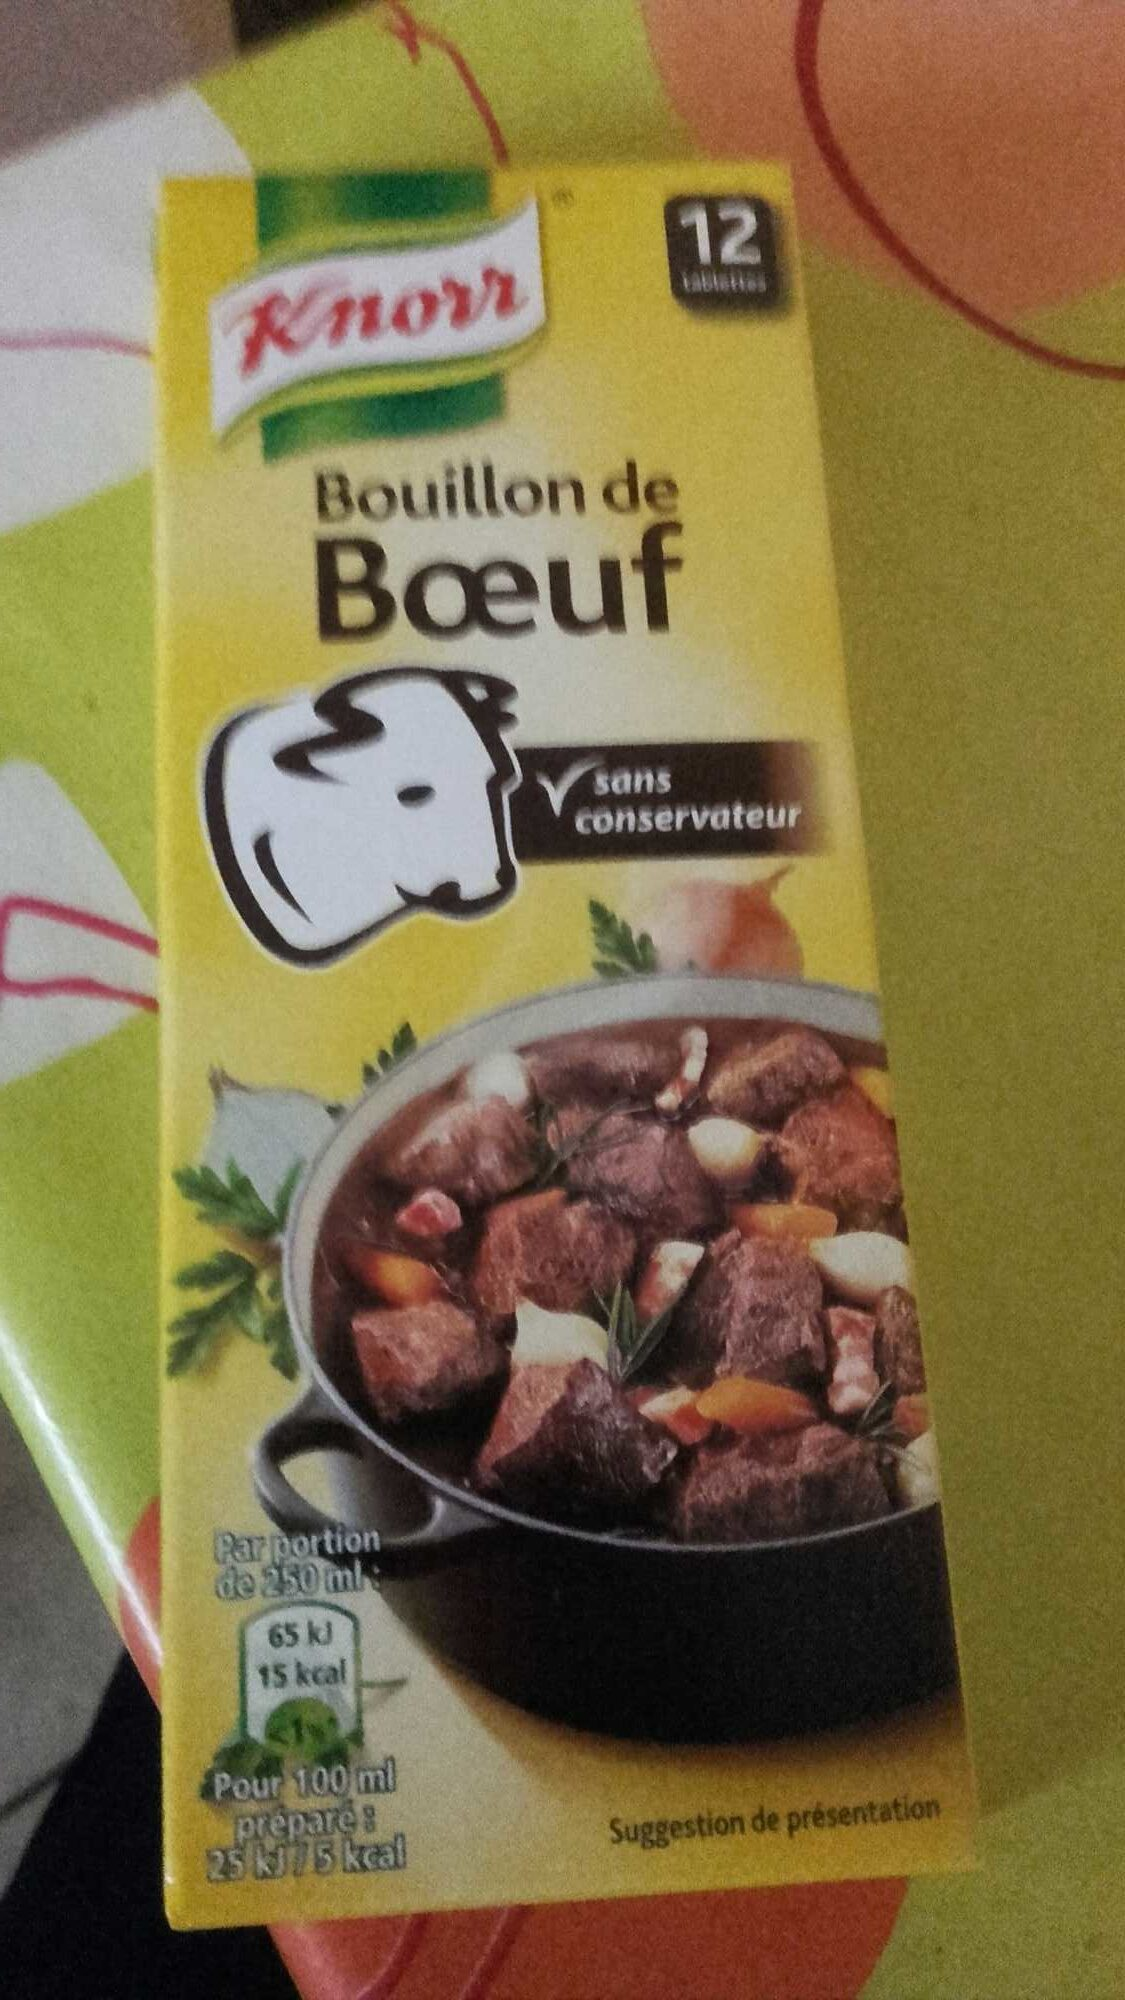 Knorr saveur boeuf - Product - fr